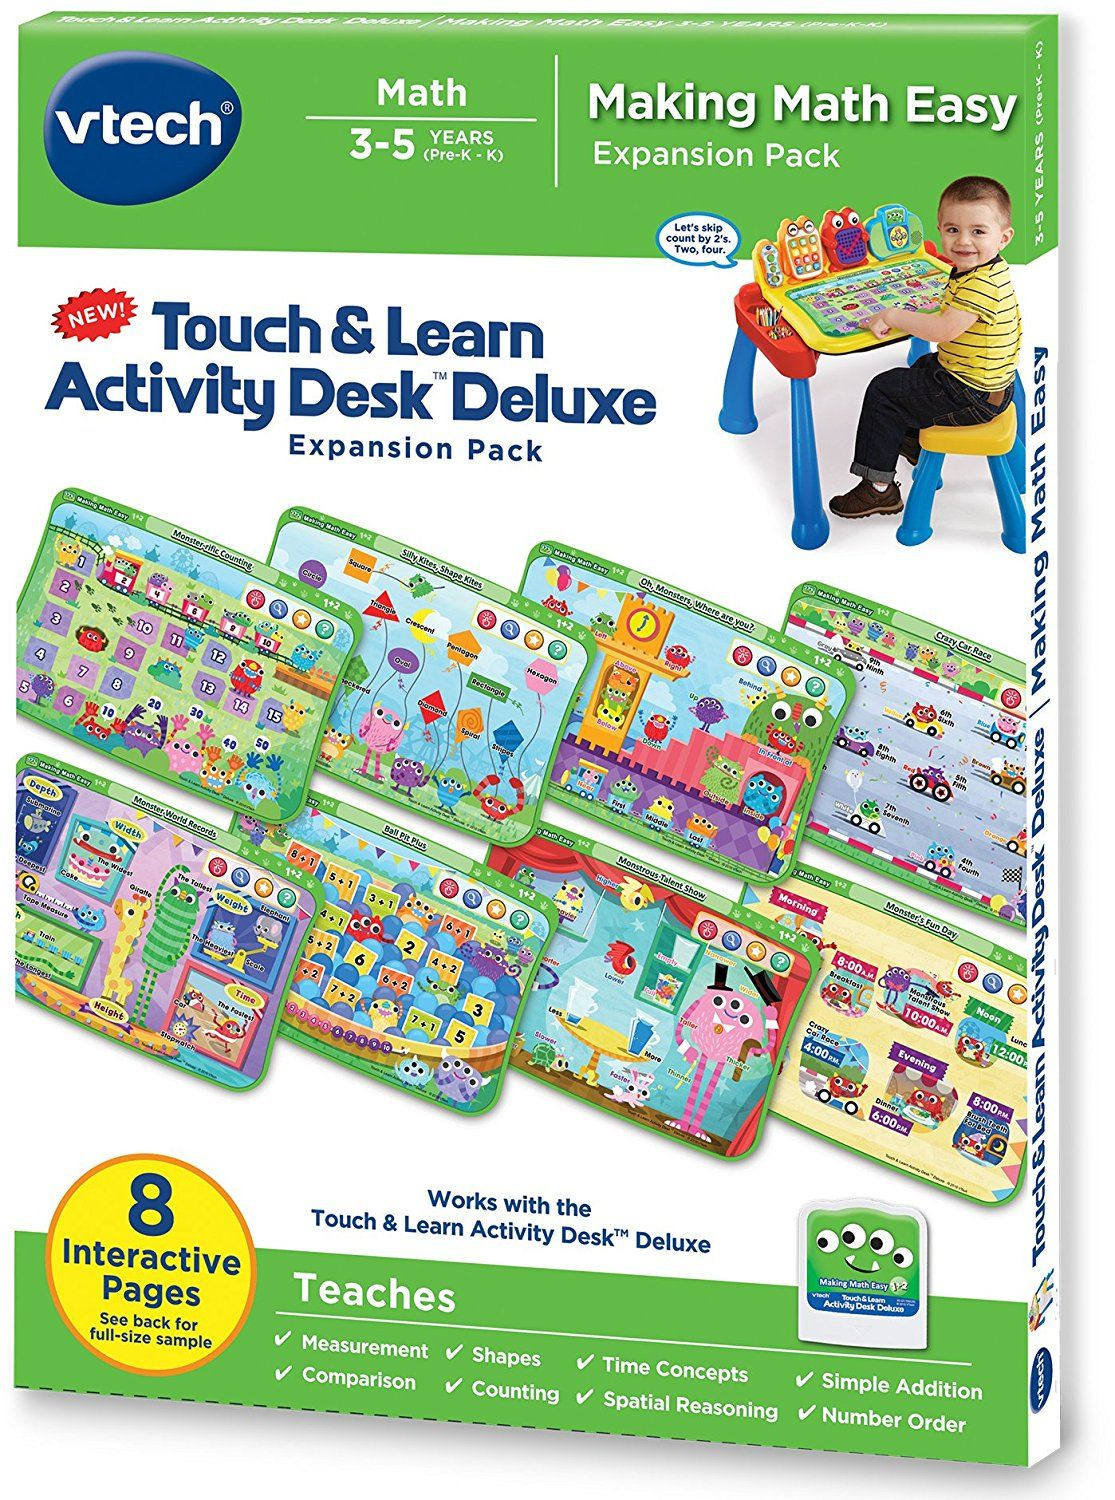 Buy Vtech Touch And Learn Activity Desk Deluxe Making